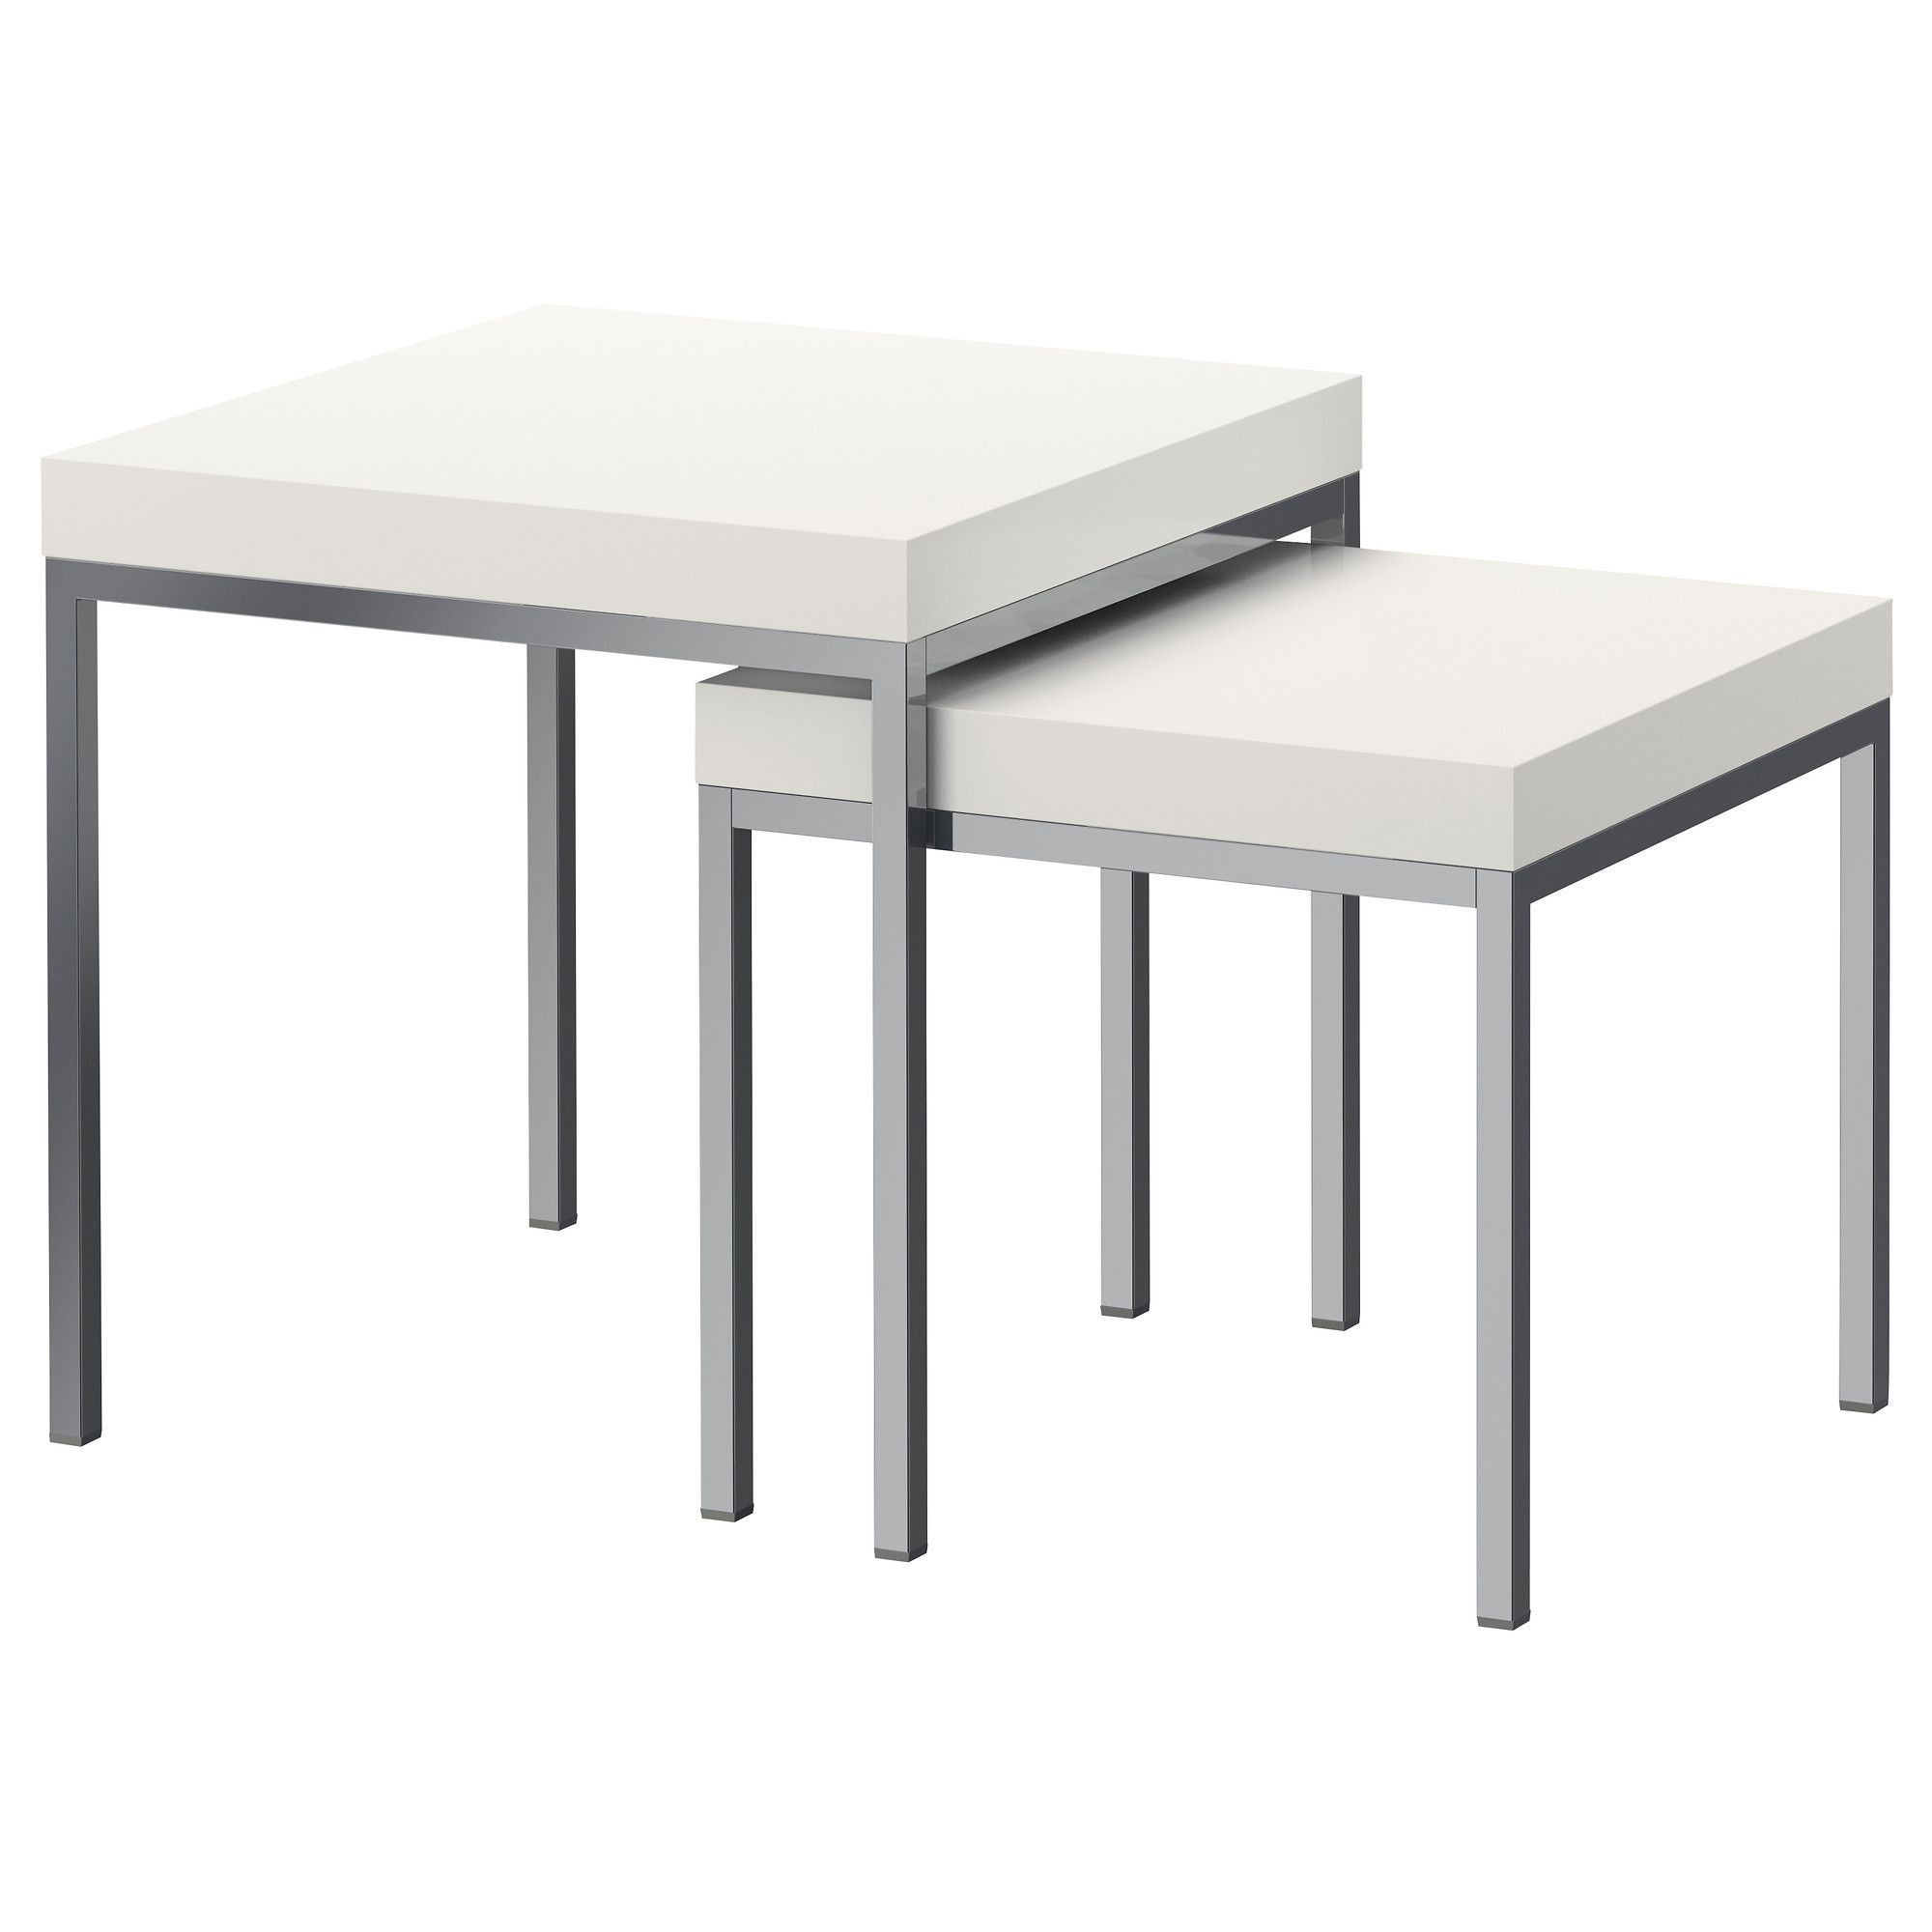 klubbo nesting tables set of 2 white ikea would this work rh pinterest com